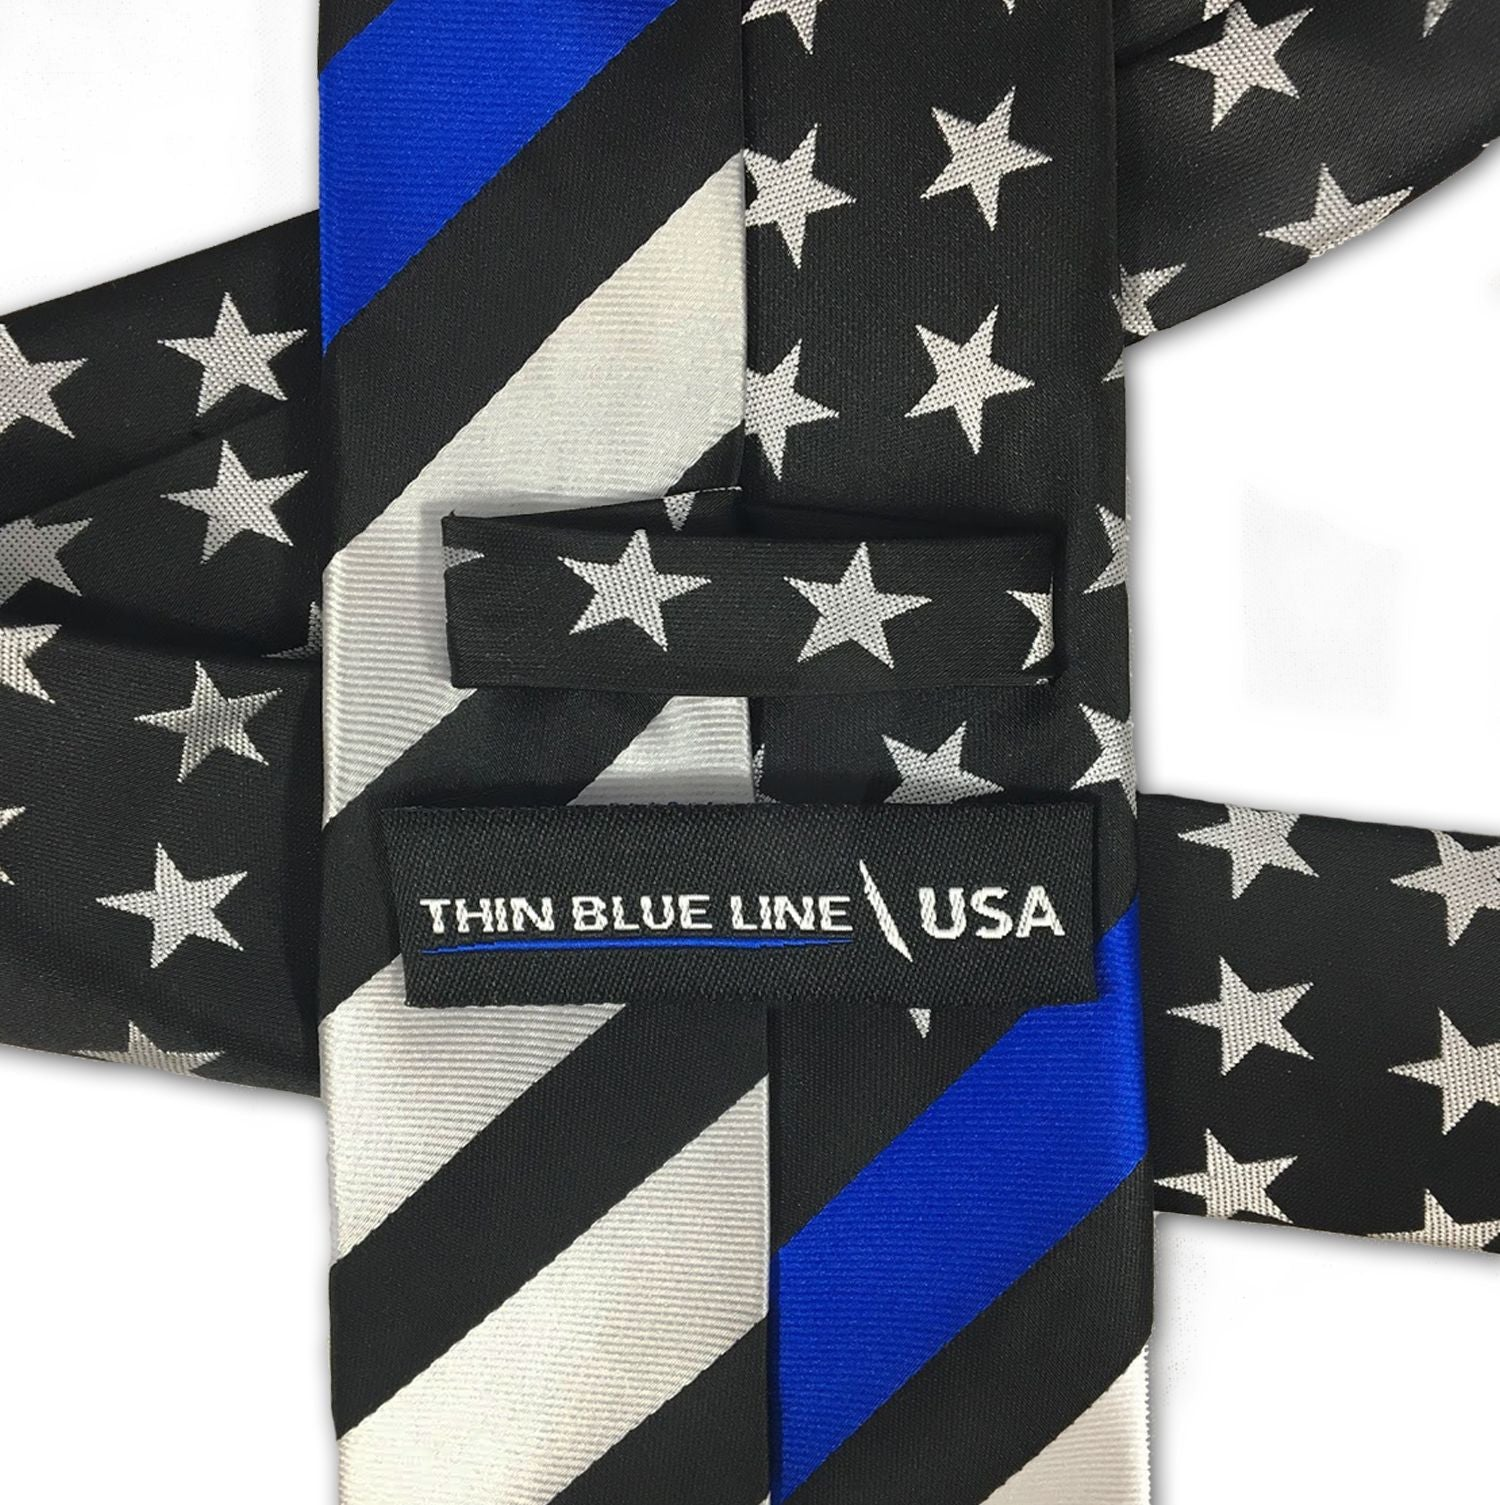 Thin Blue Line USA - Law Enforcement Products